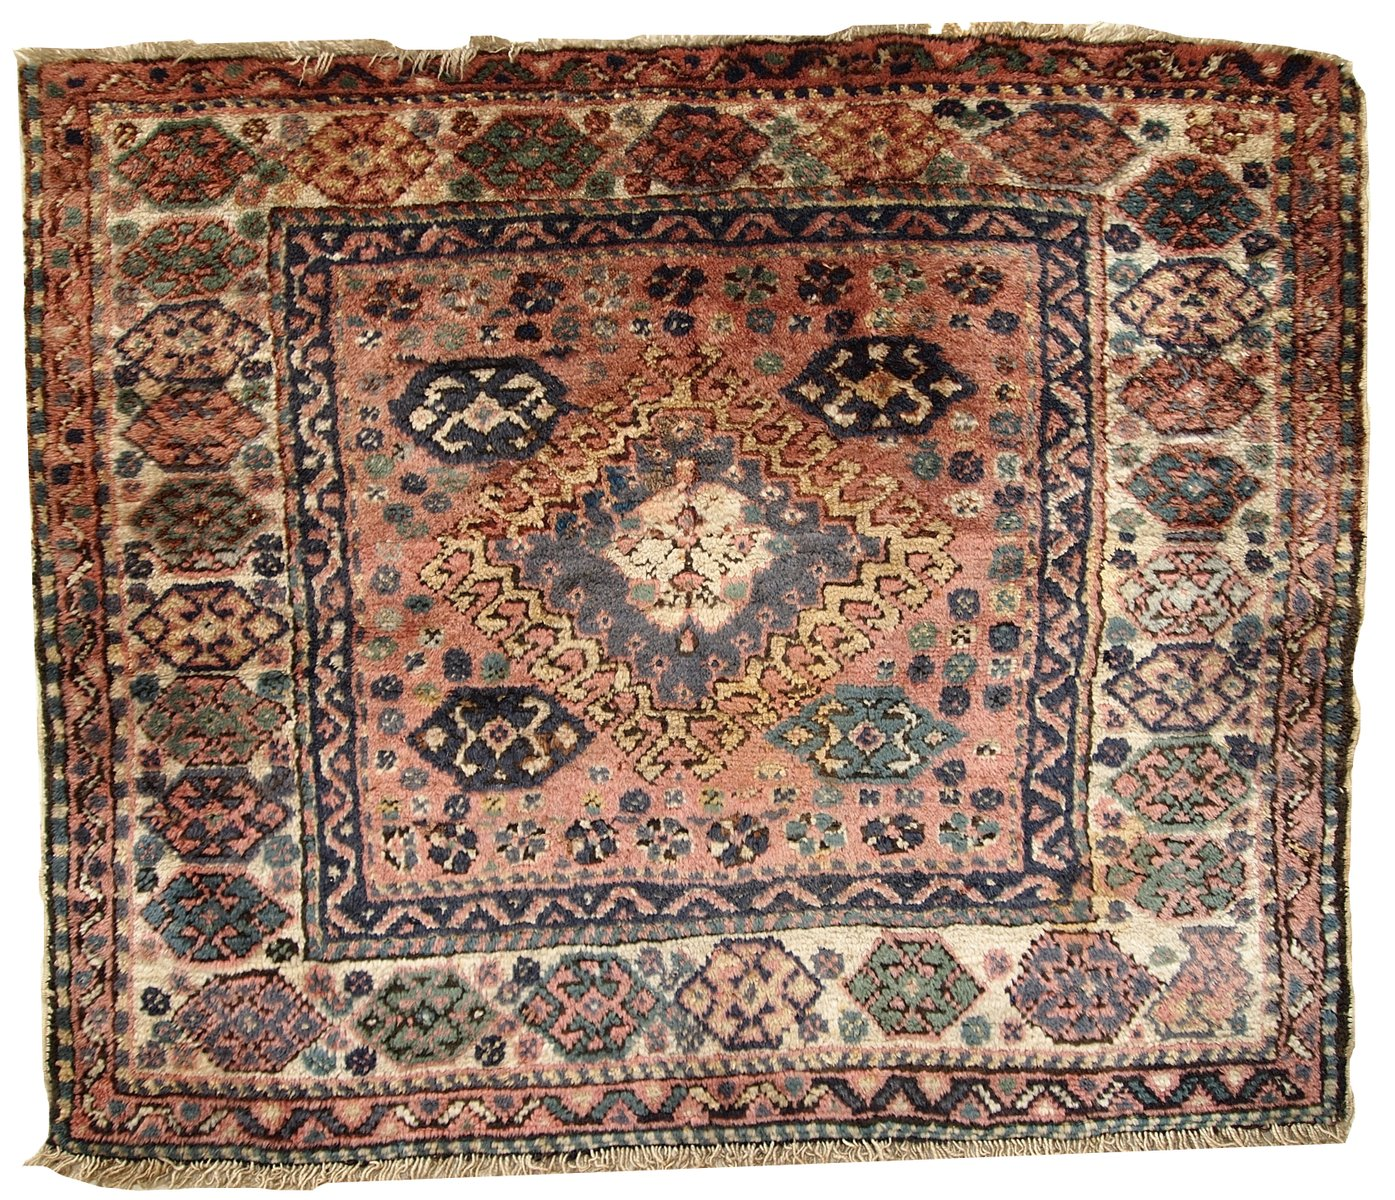 tapis bagface kurde vintage fait main iran 1930 en vente sur pamono. Black Bedroom Furniture Sets. Home Design Ideas